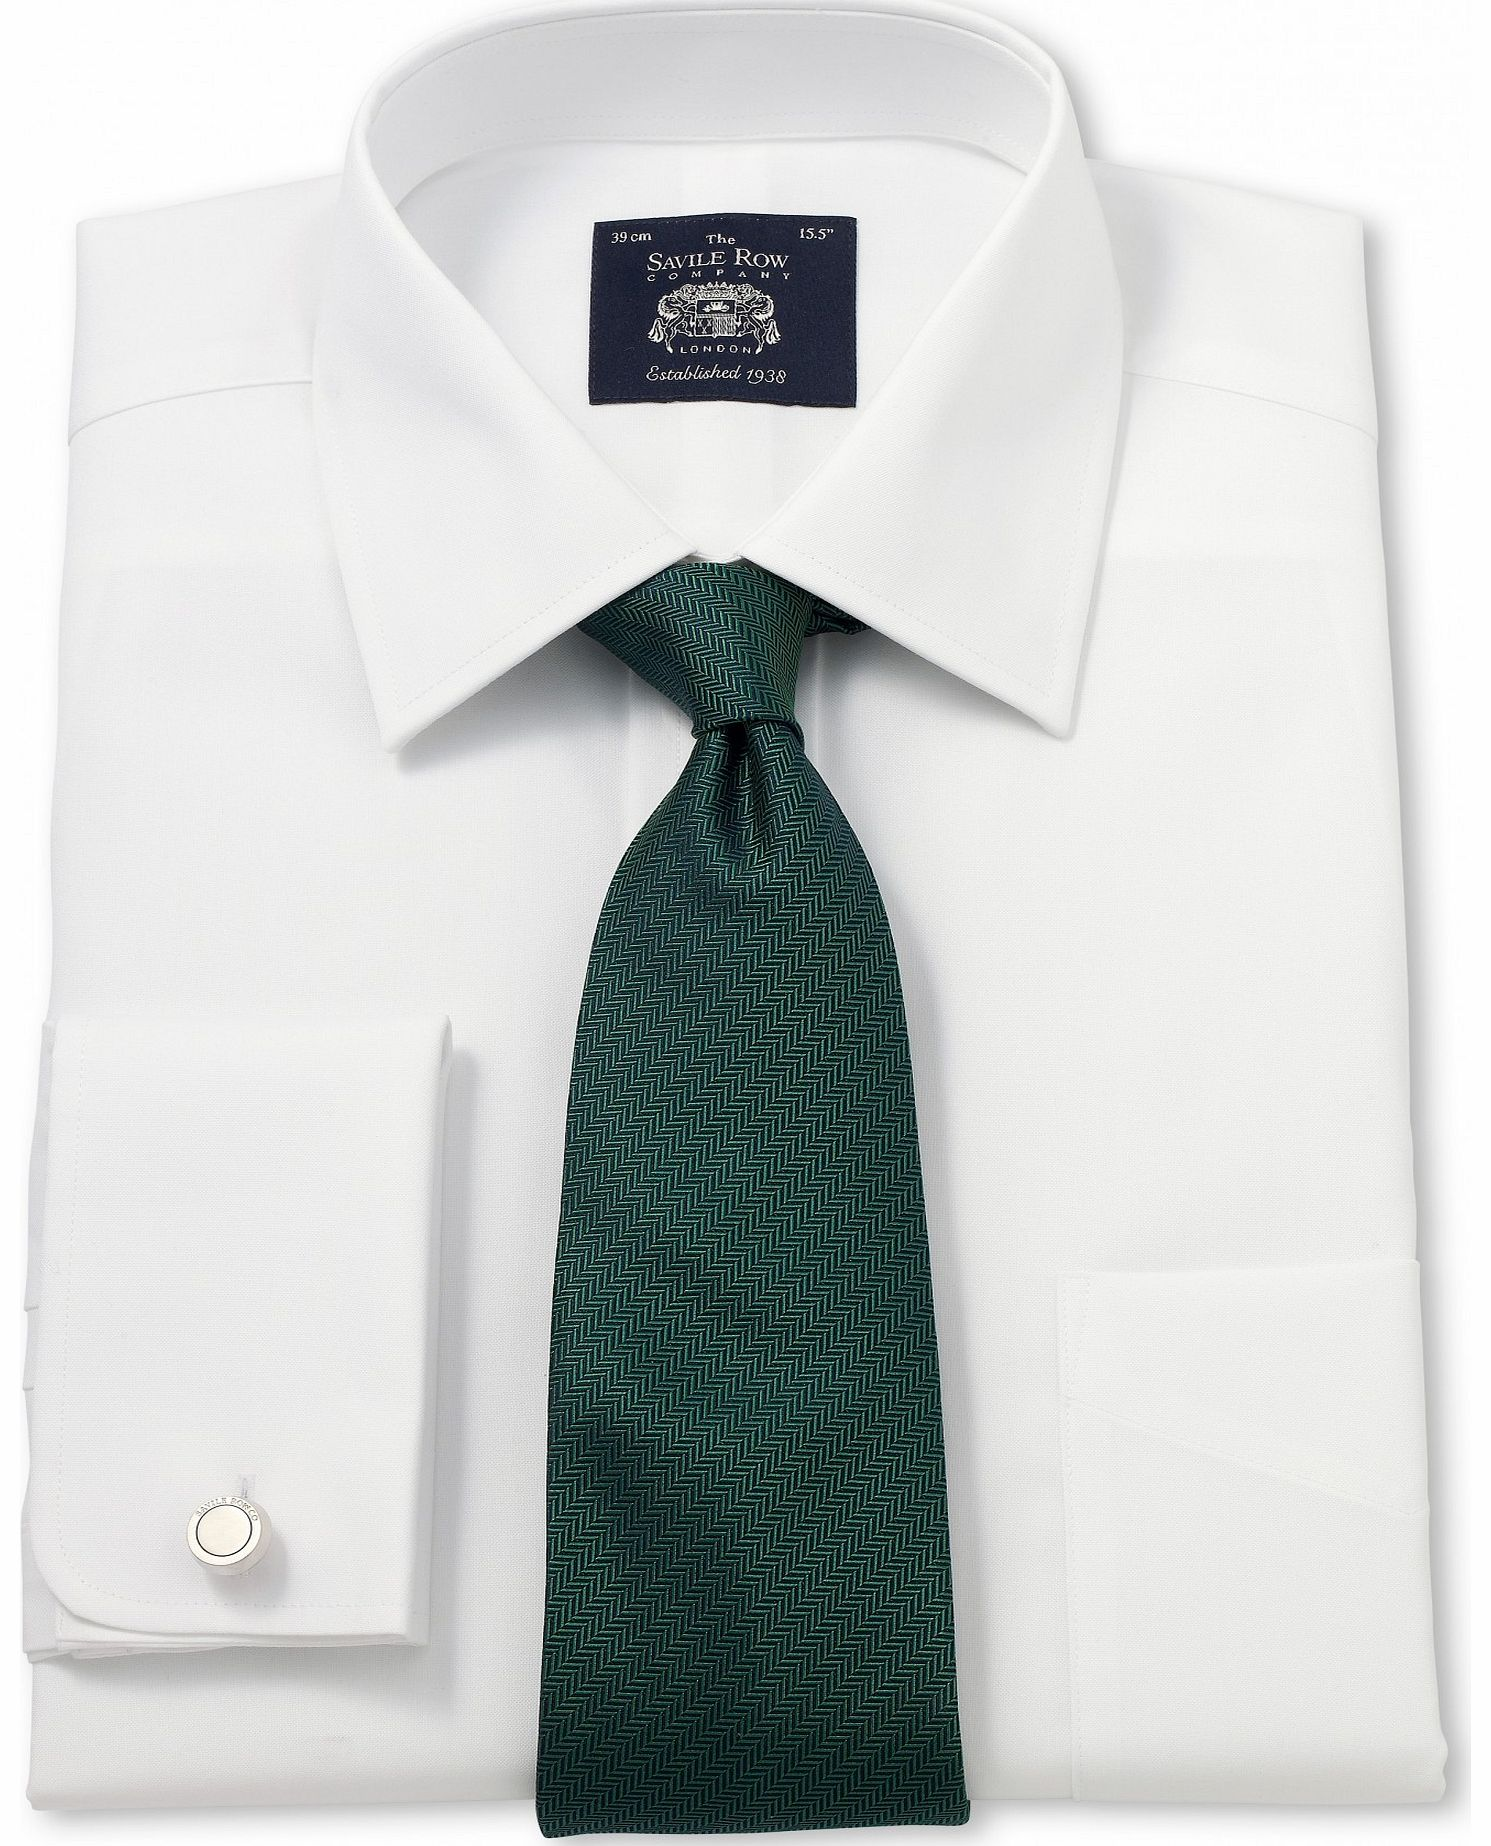 Savile Row Company White Non-Iron Classic Fit Shirt 16`` Single product image